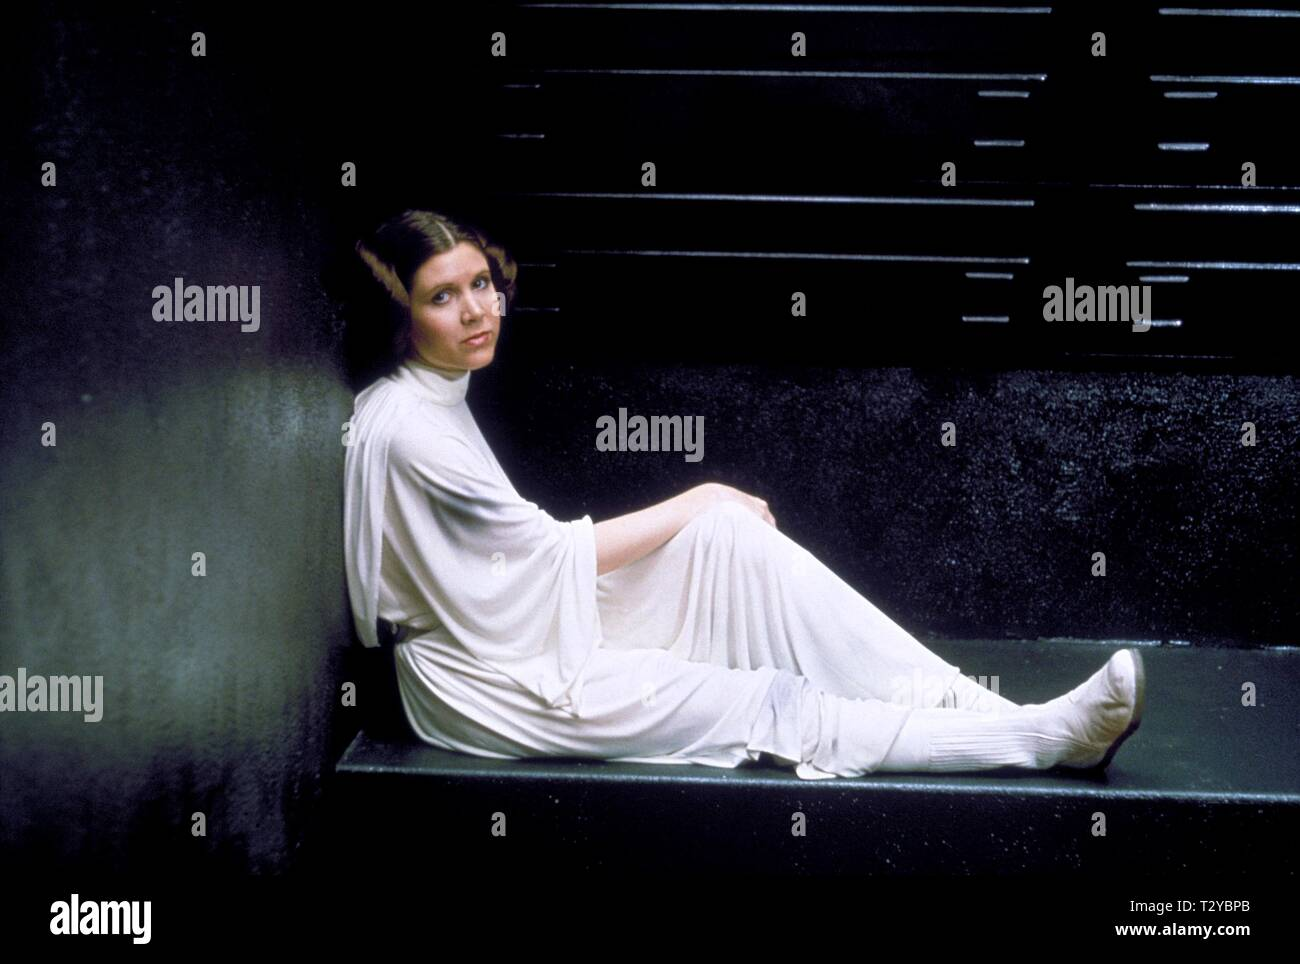 CARRIE FISHER, STAR WARS: EPISODE IV - A NEW HOPE, 1977 - Stock Image